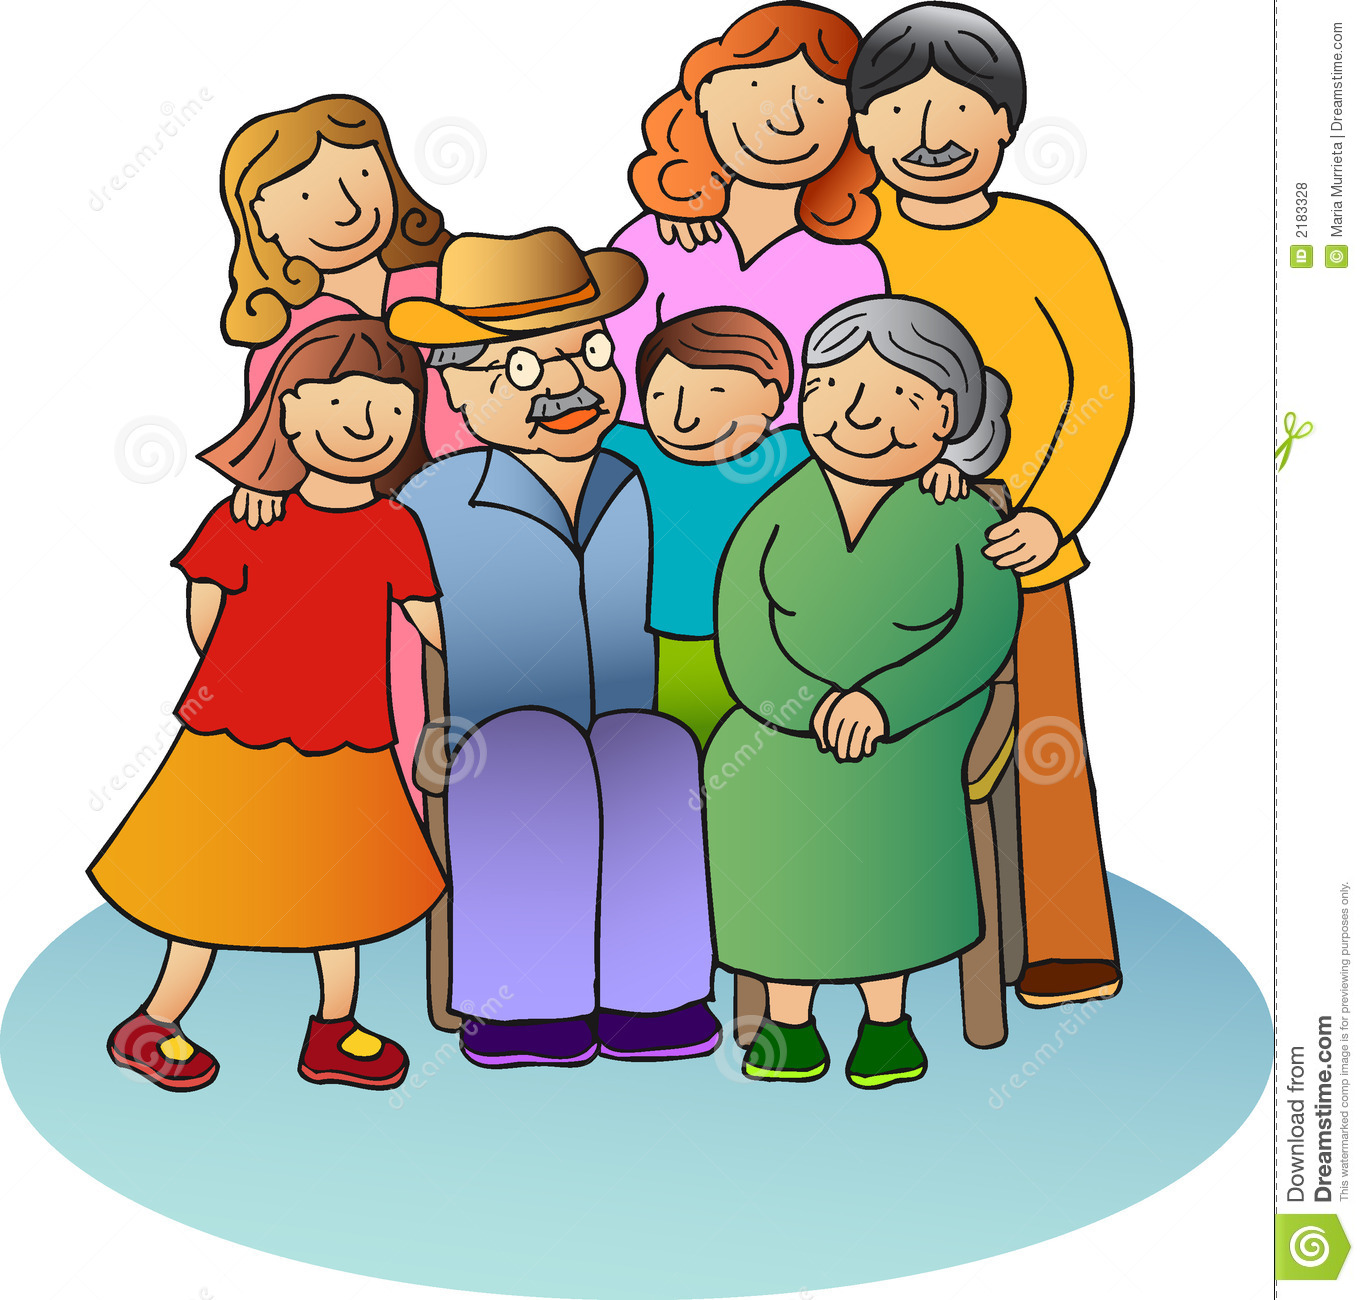 Family with Grandparents Clipart Free.